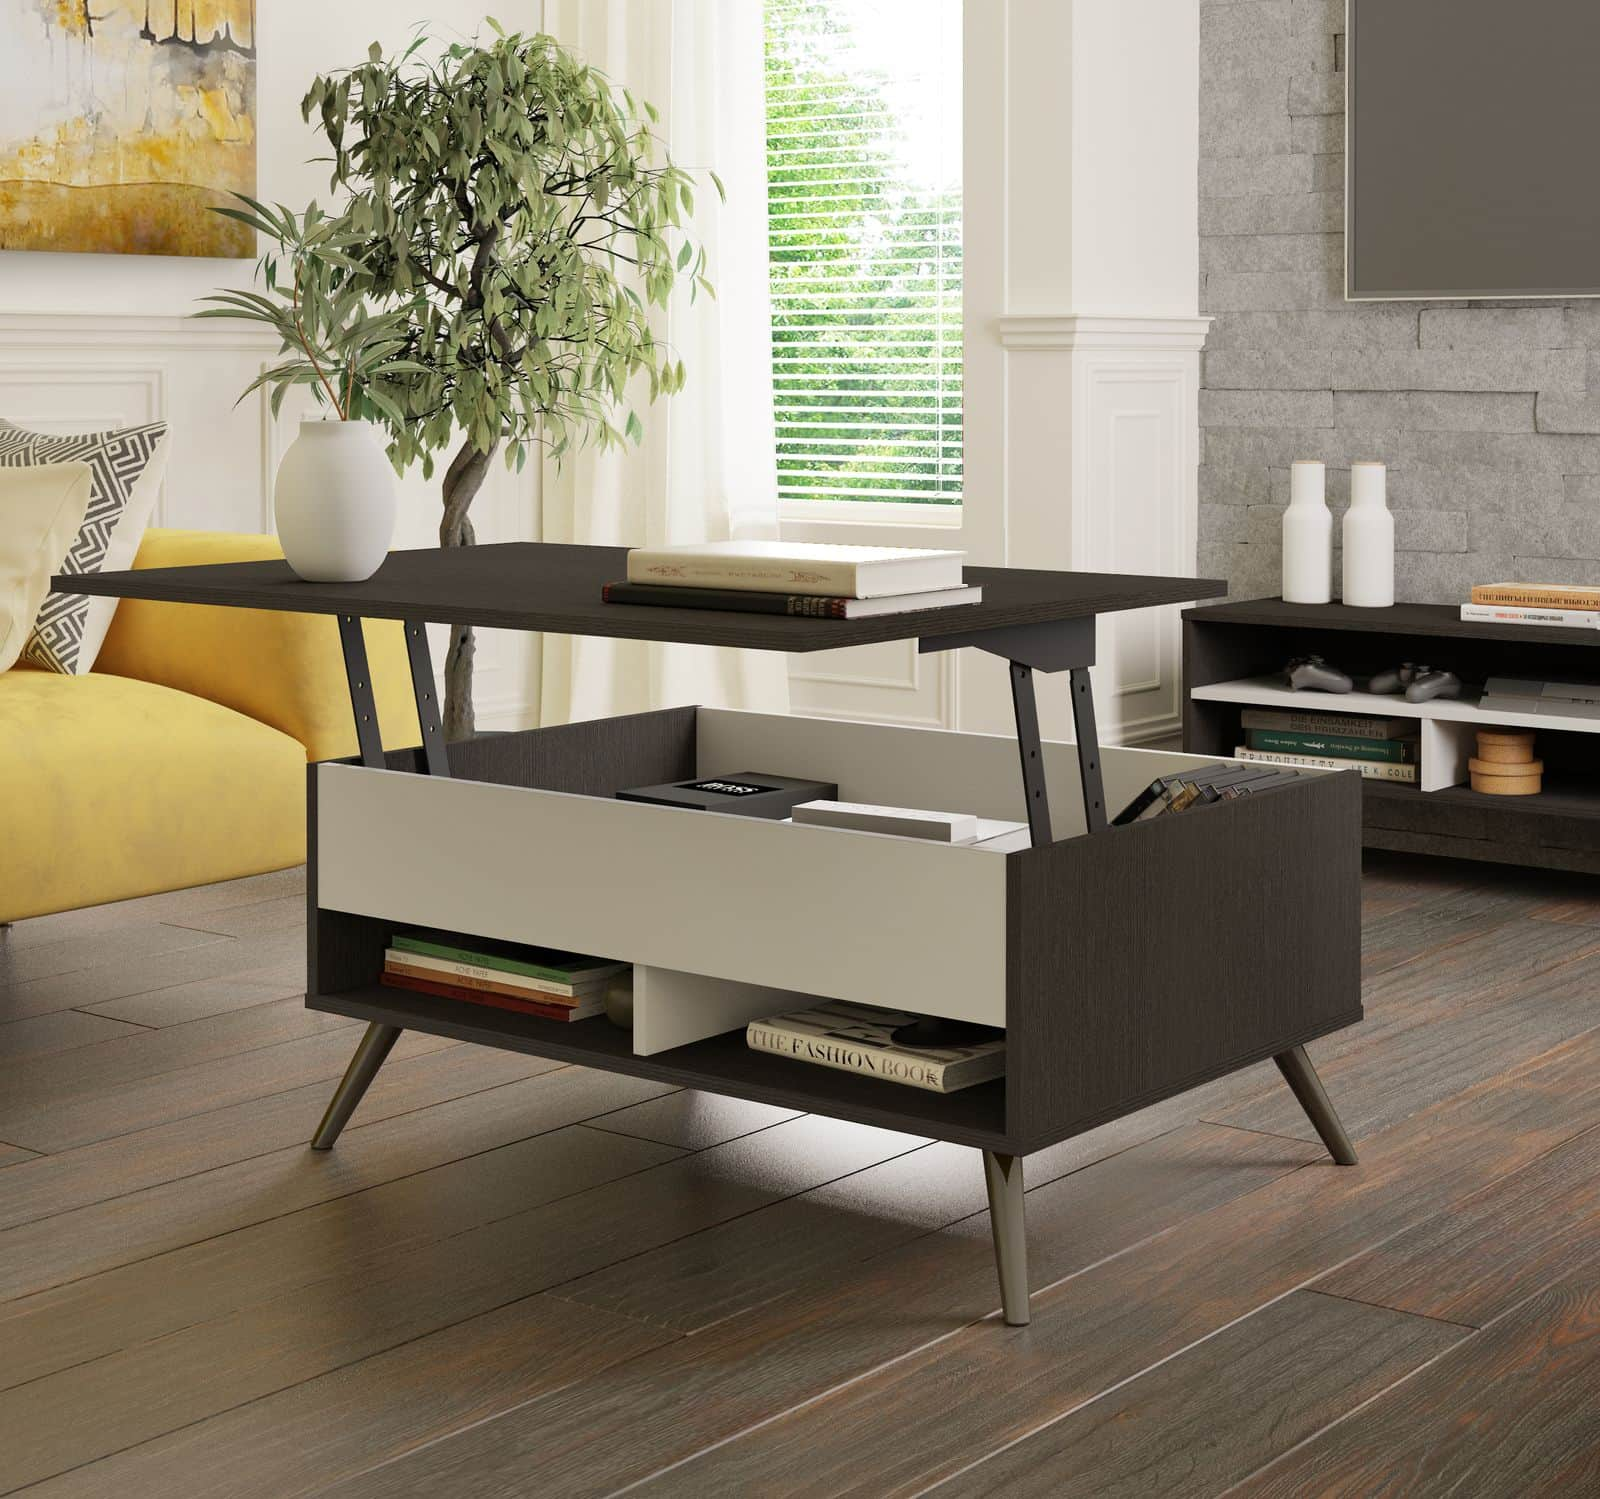 Space-saving lift-top coffee table from Bestar